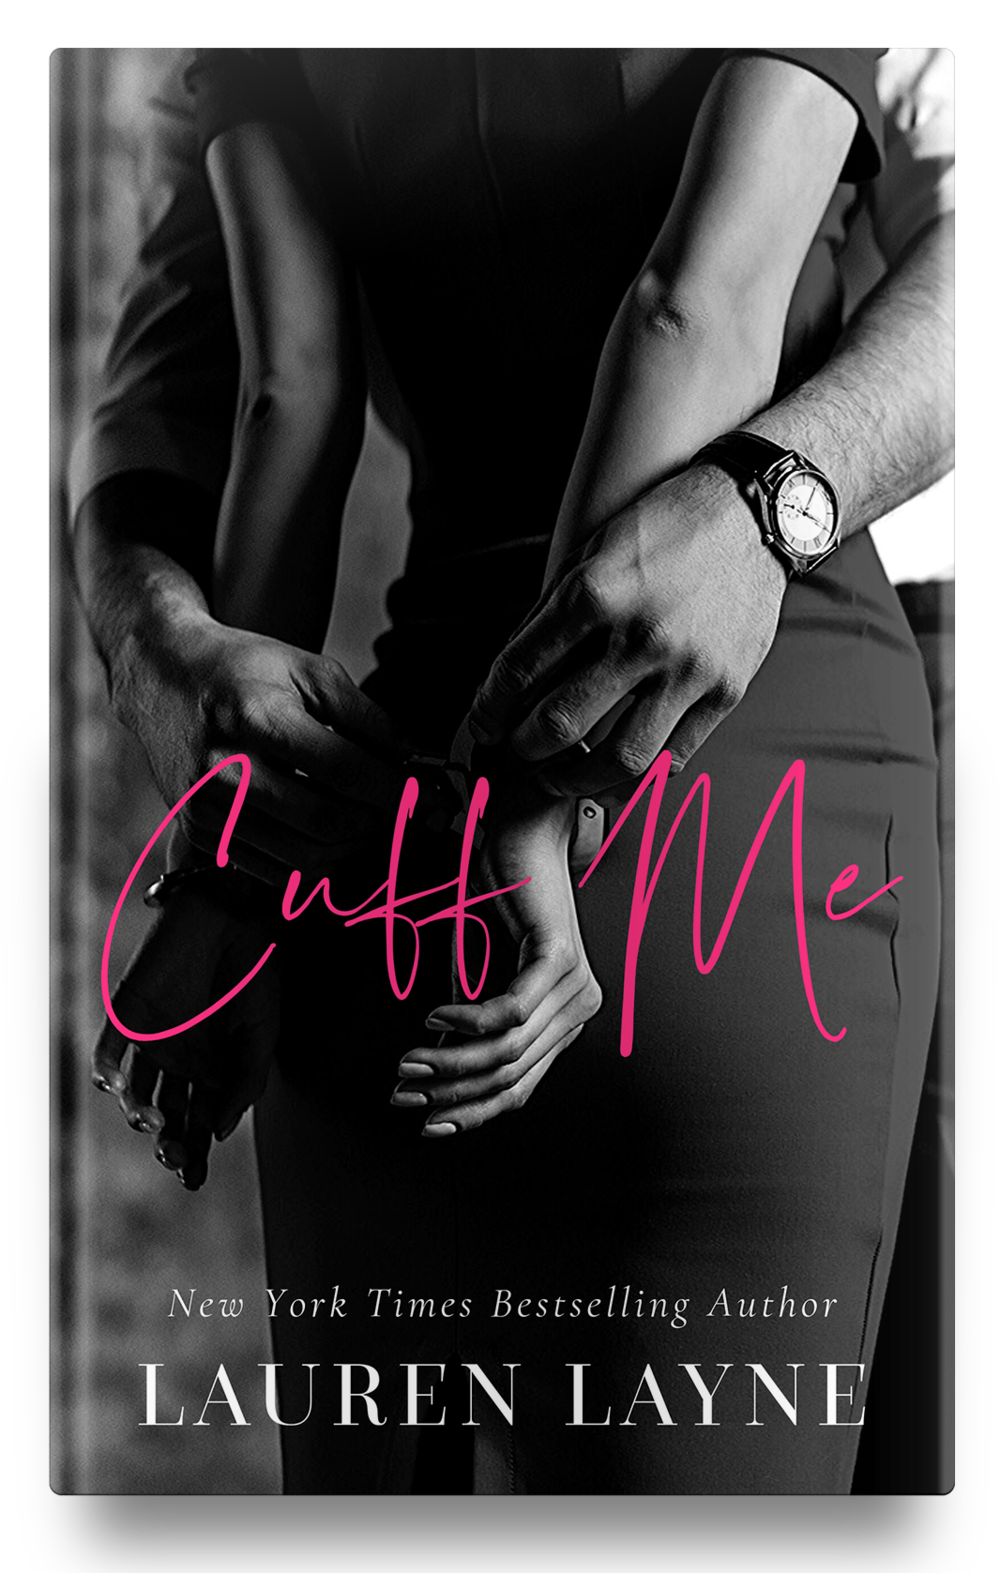 iPhone-Cover-CuffMe.png